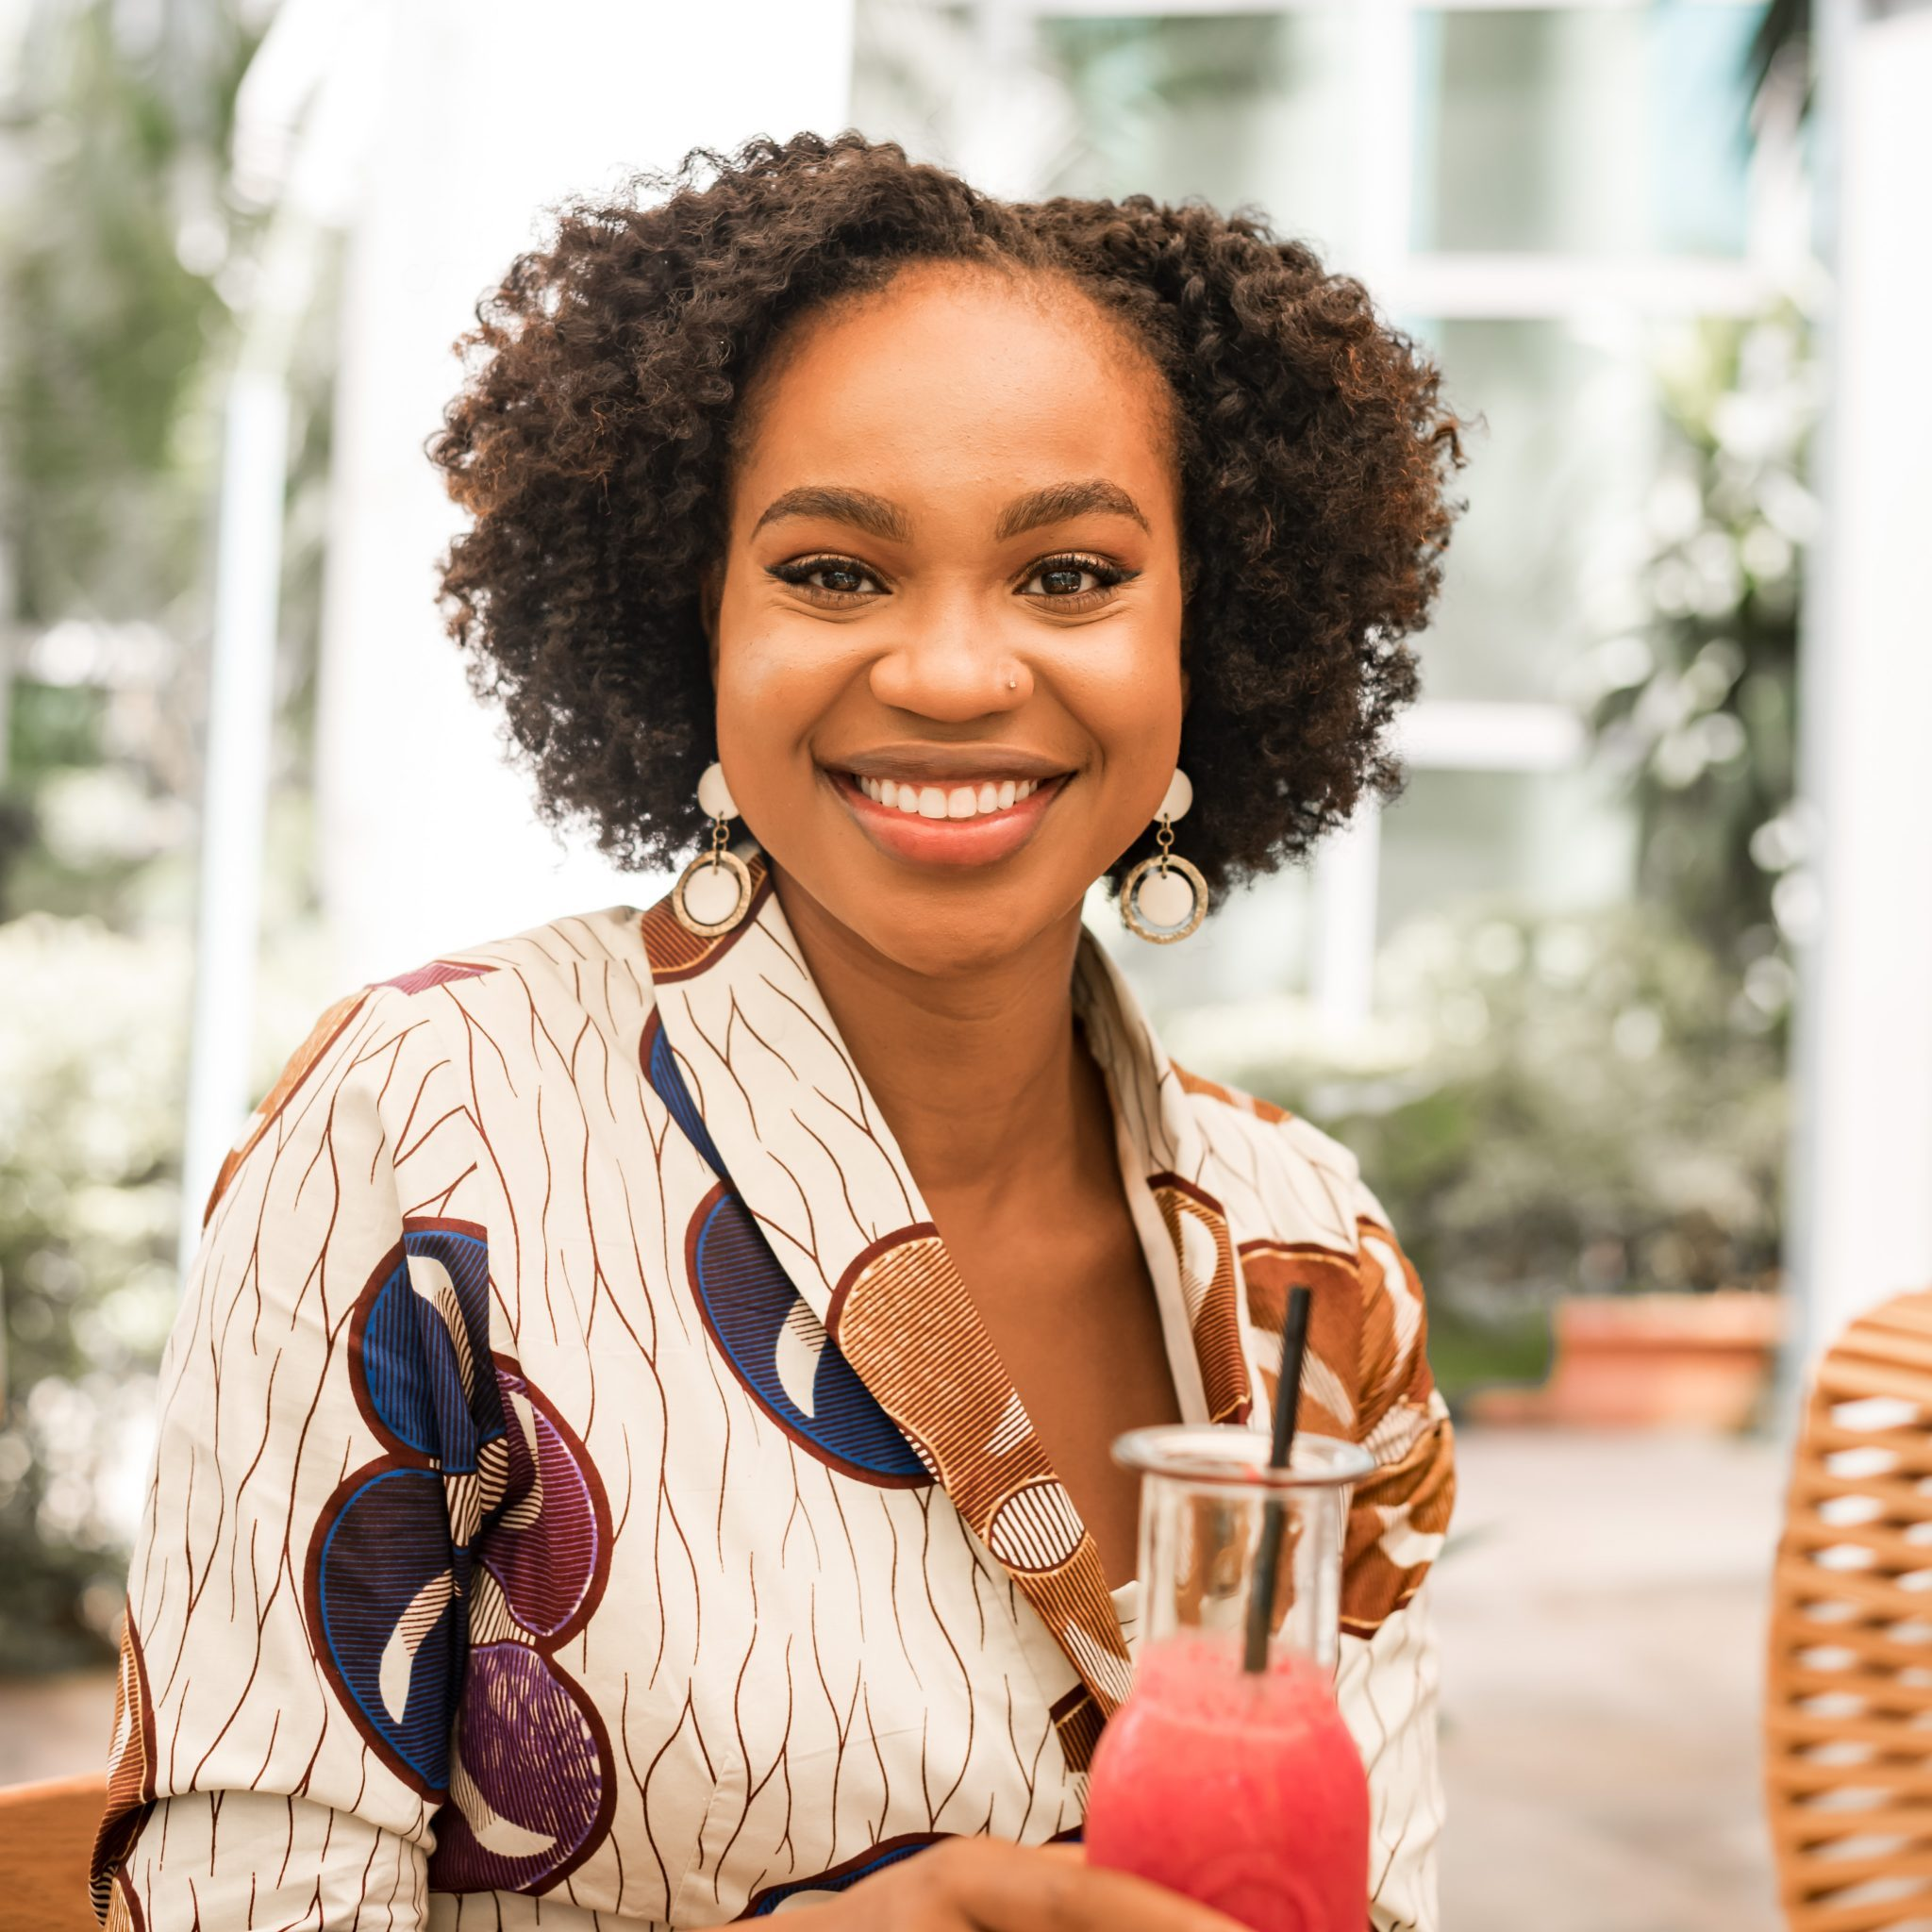 伊耶玛·科拉in African print dress and twist out, smiling and drinking a cocktail